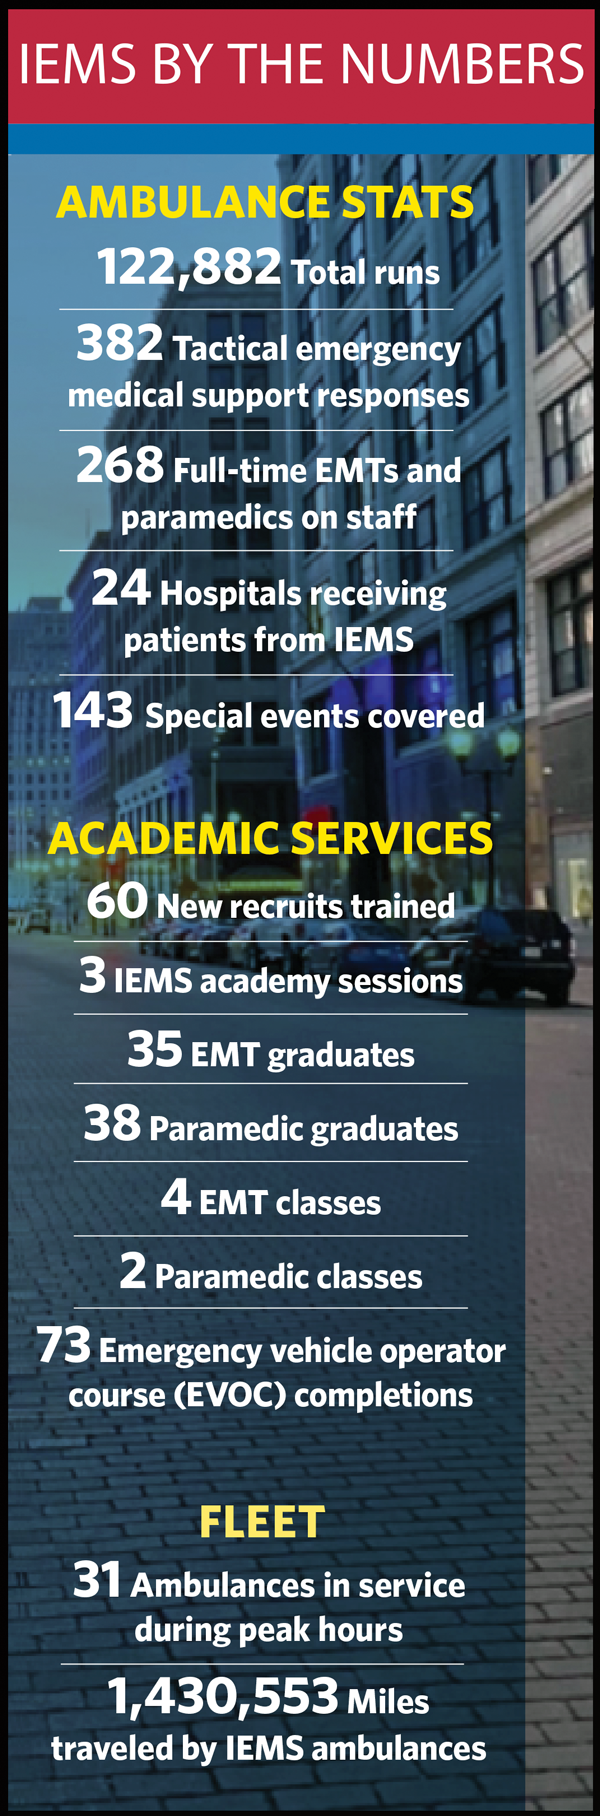 IEMS by the numbers graphic